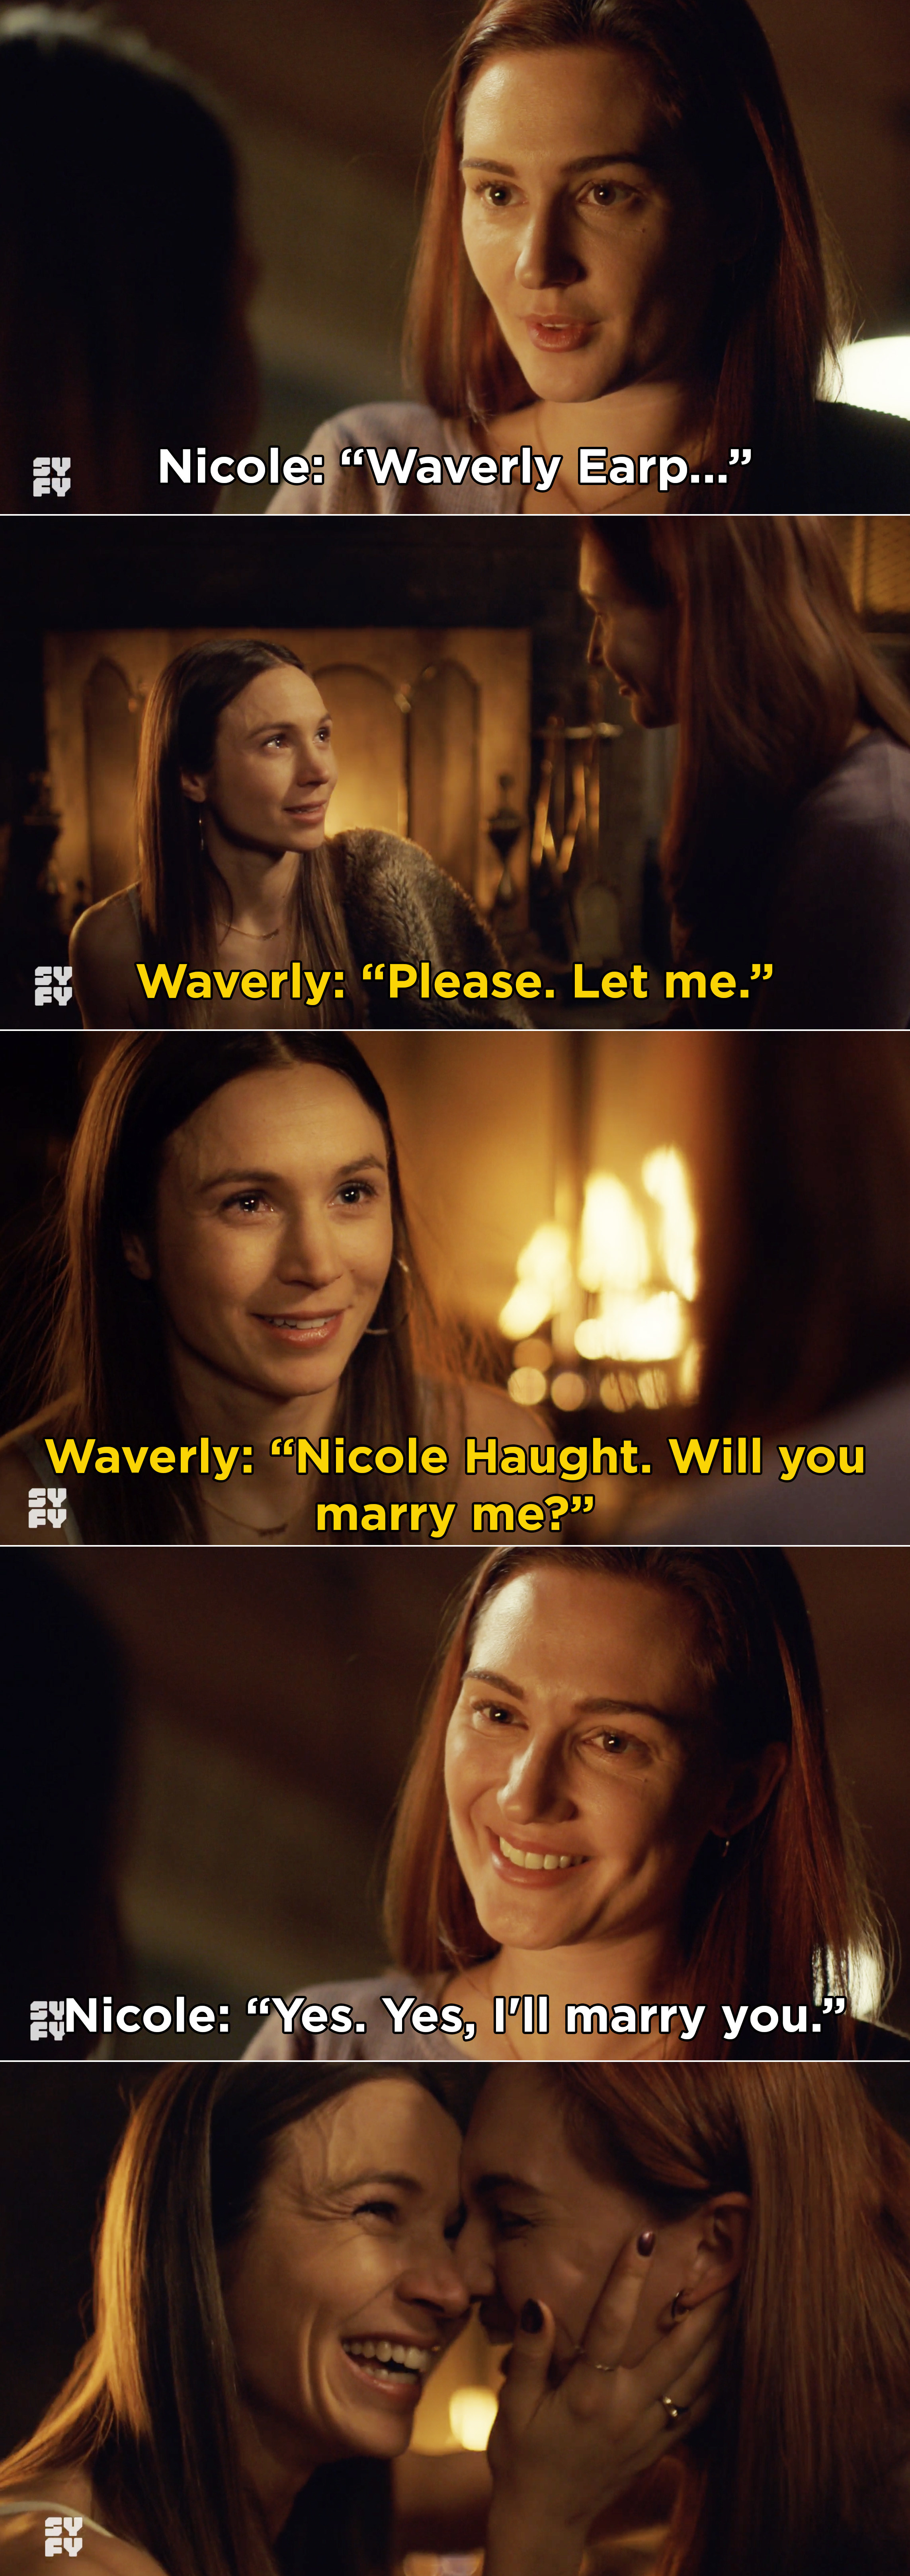 Waverly asking Nicole to marry her and Nicole saying yes